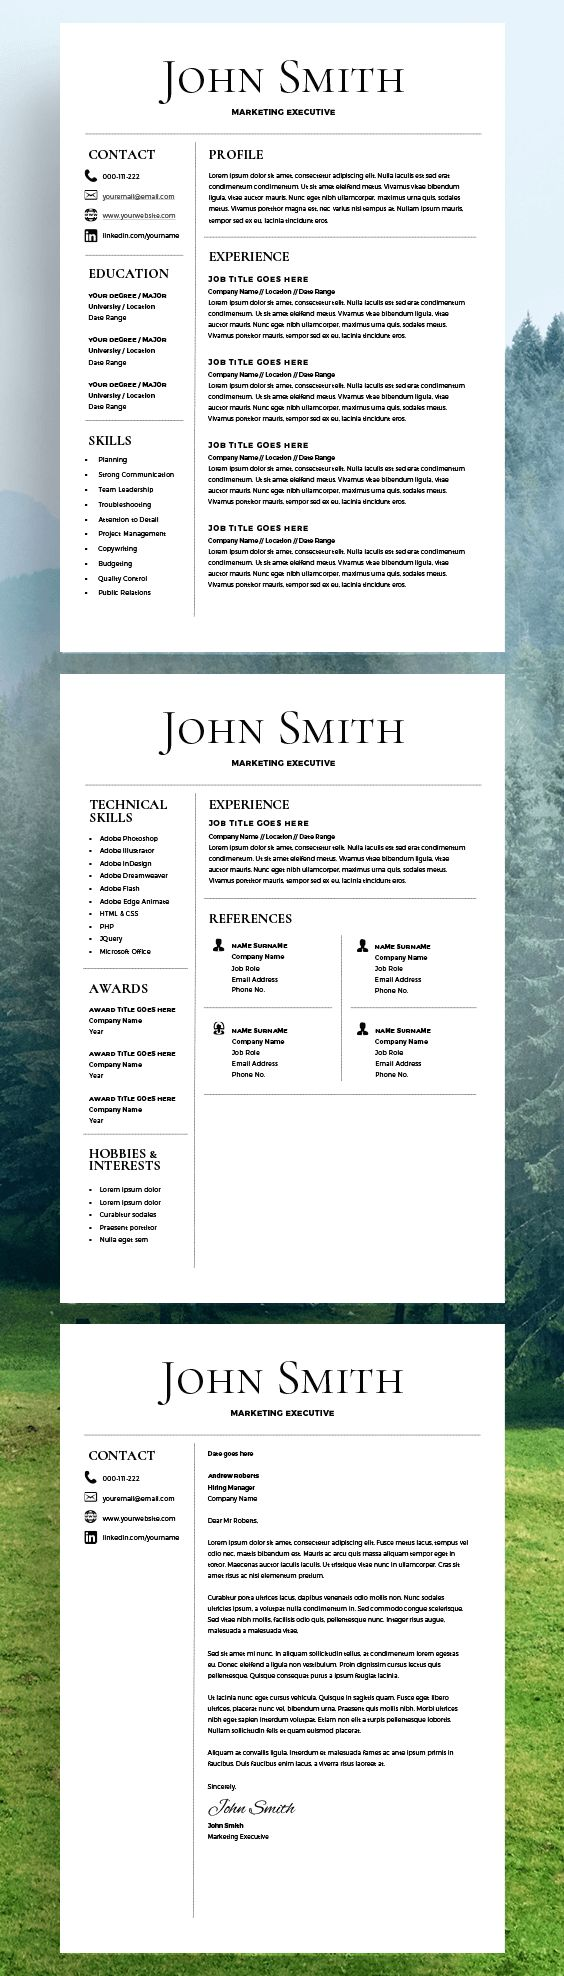 resume template cv template free cover letter ms word on mac pc - Resume Template Word Mac